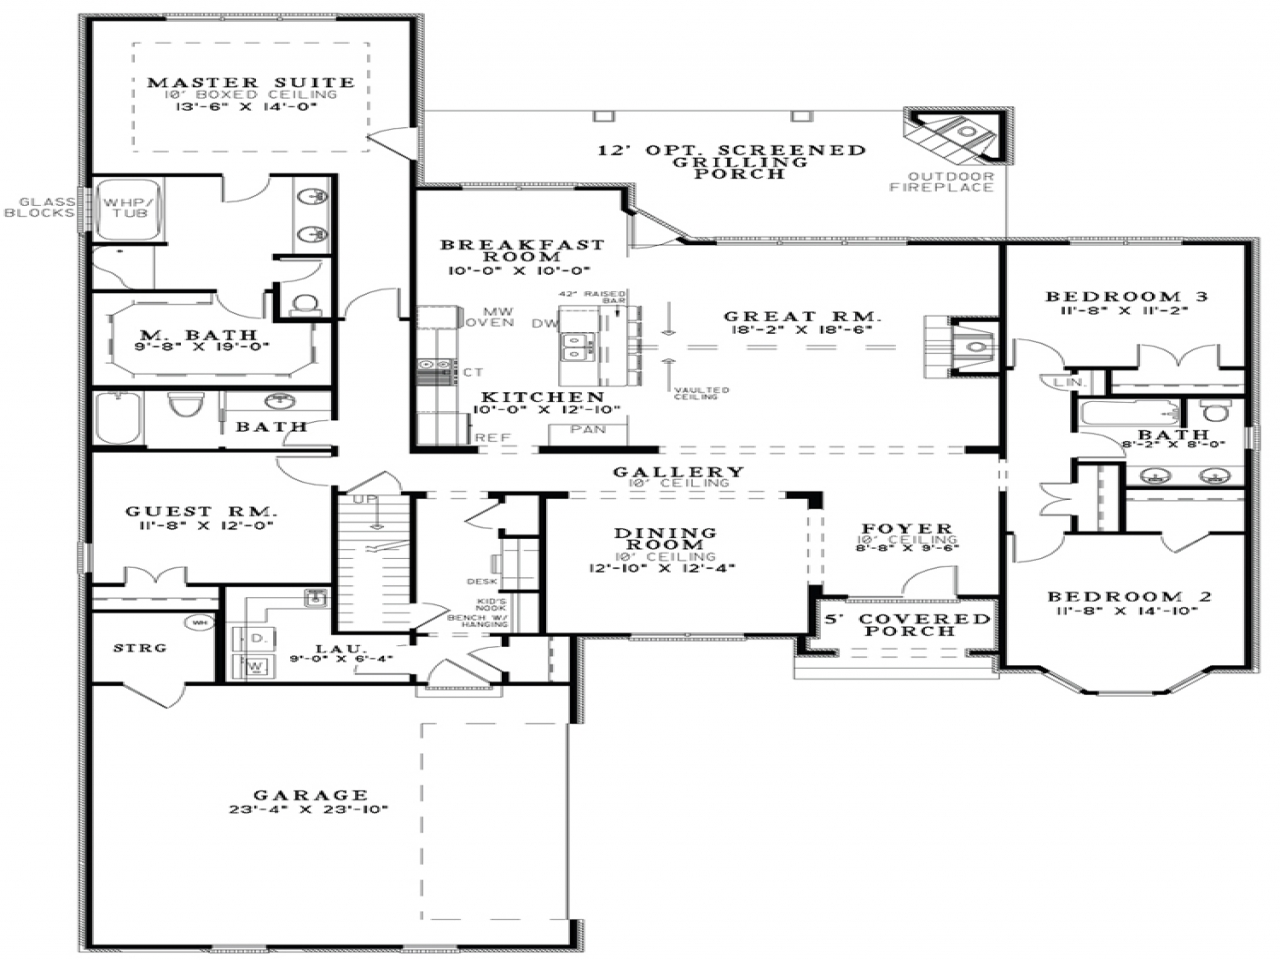 Unique open floor plans open floor plan house designs for Open floor plan home designs